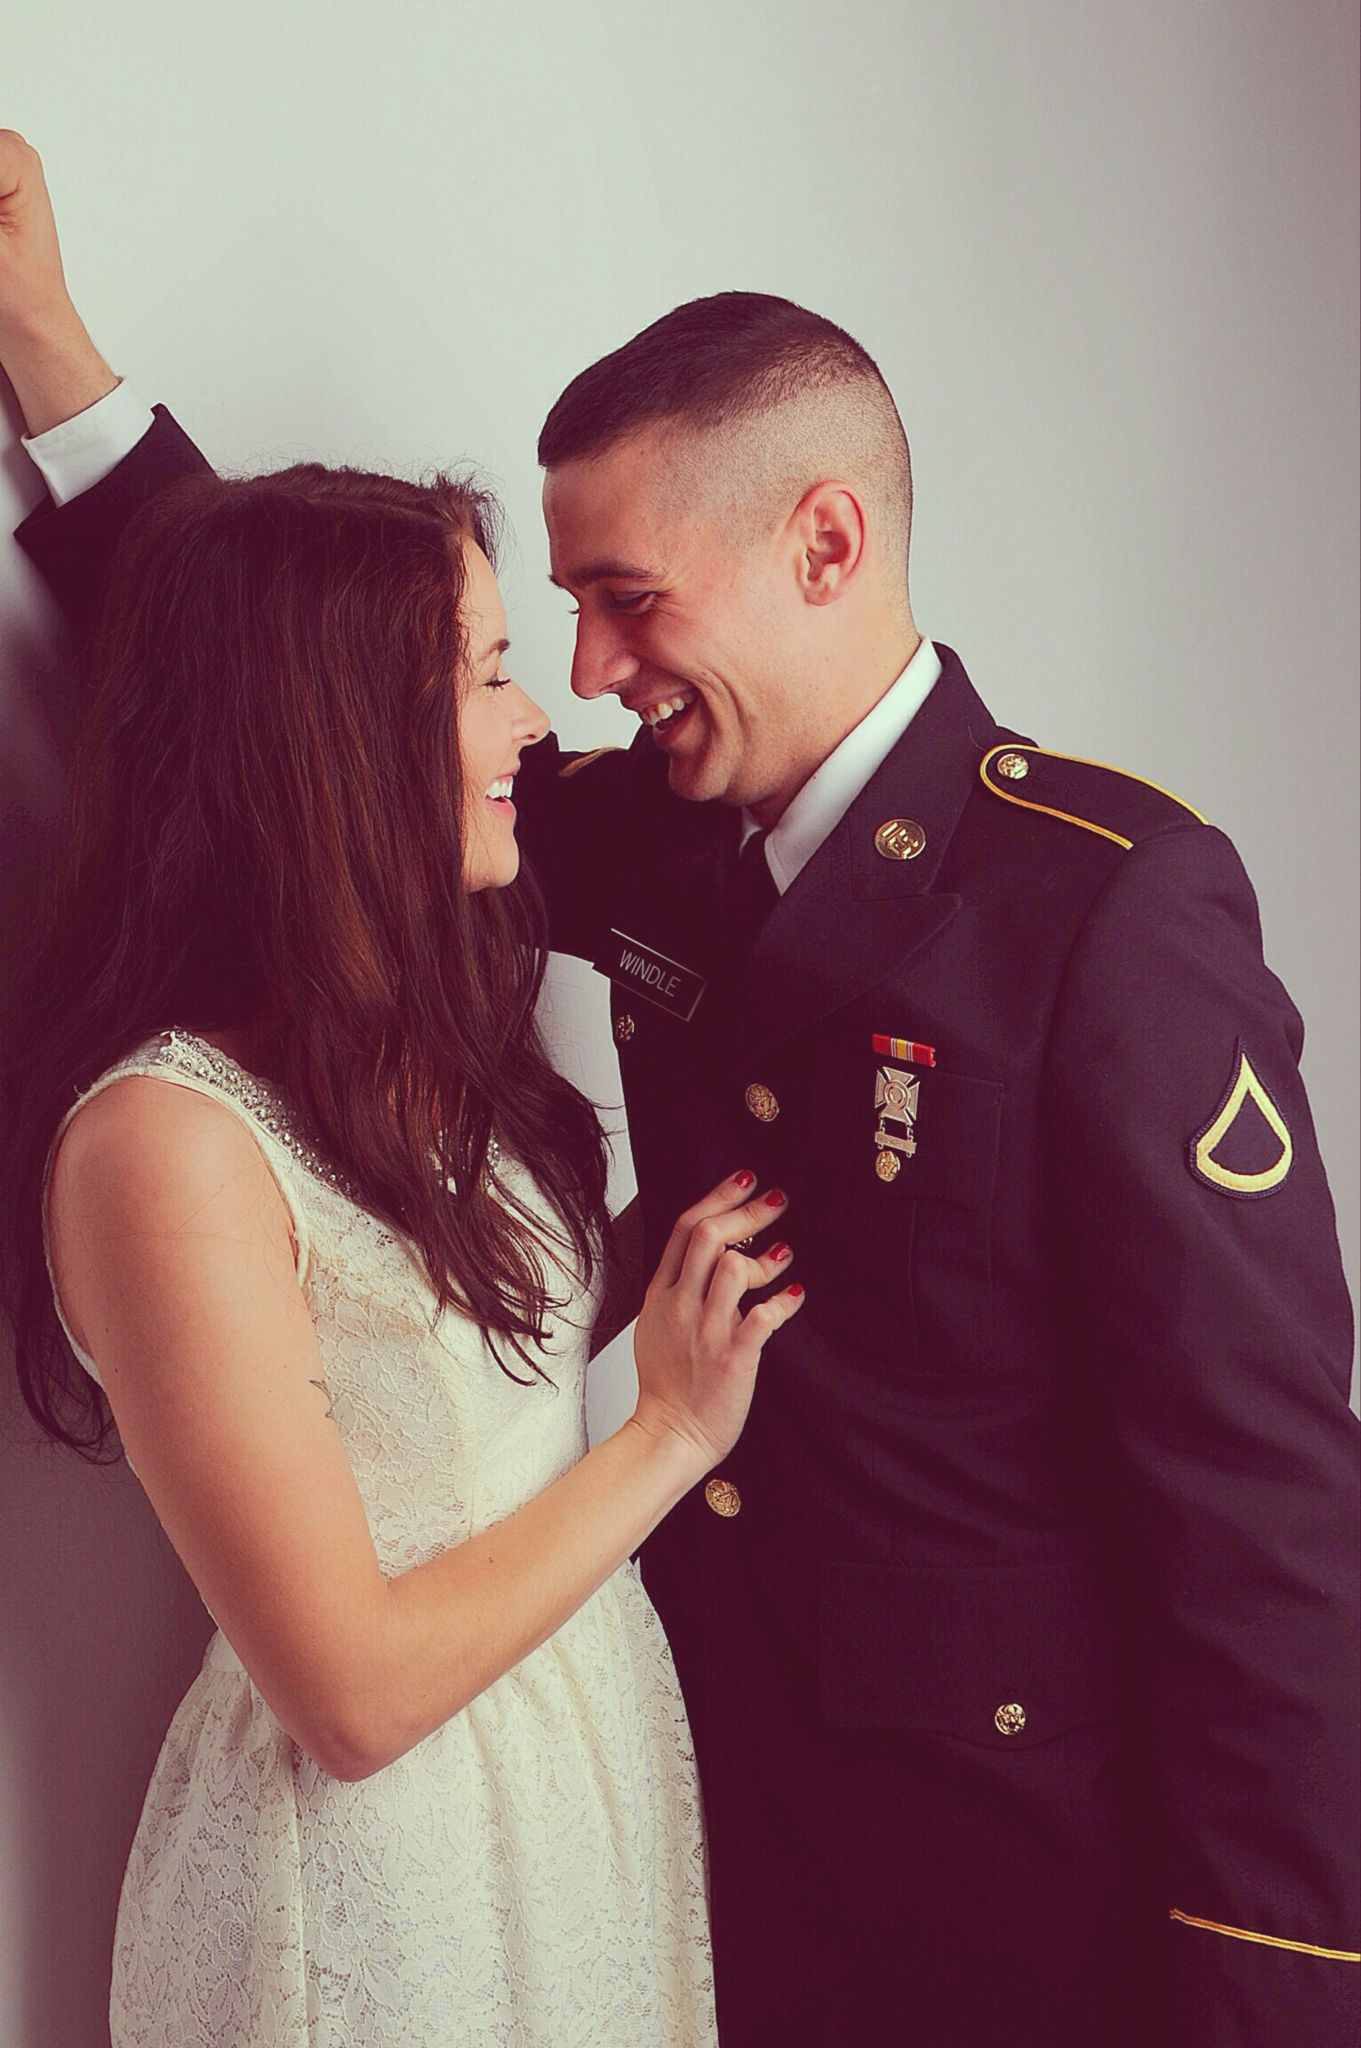 Pin By Kaylene Luden On Army Love Army Wedding Dress Blues Army Army Wedding Pictures [ 2048 x 1361 Pixel ]